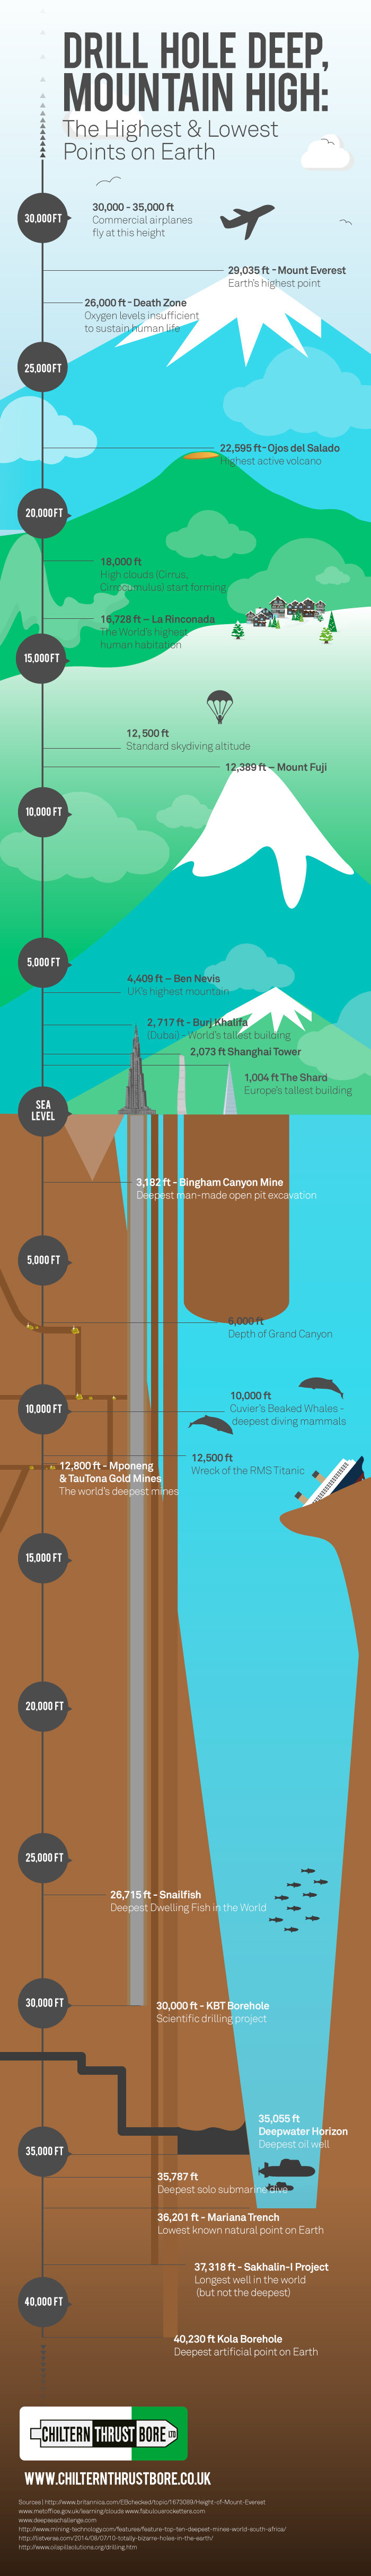 The Highest And Lowest Points On Earth Tropopause To Cross Section Diagram For Pinterest Mount Fuji 12389 Ft 37762 M